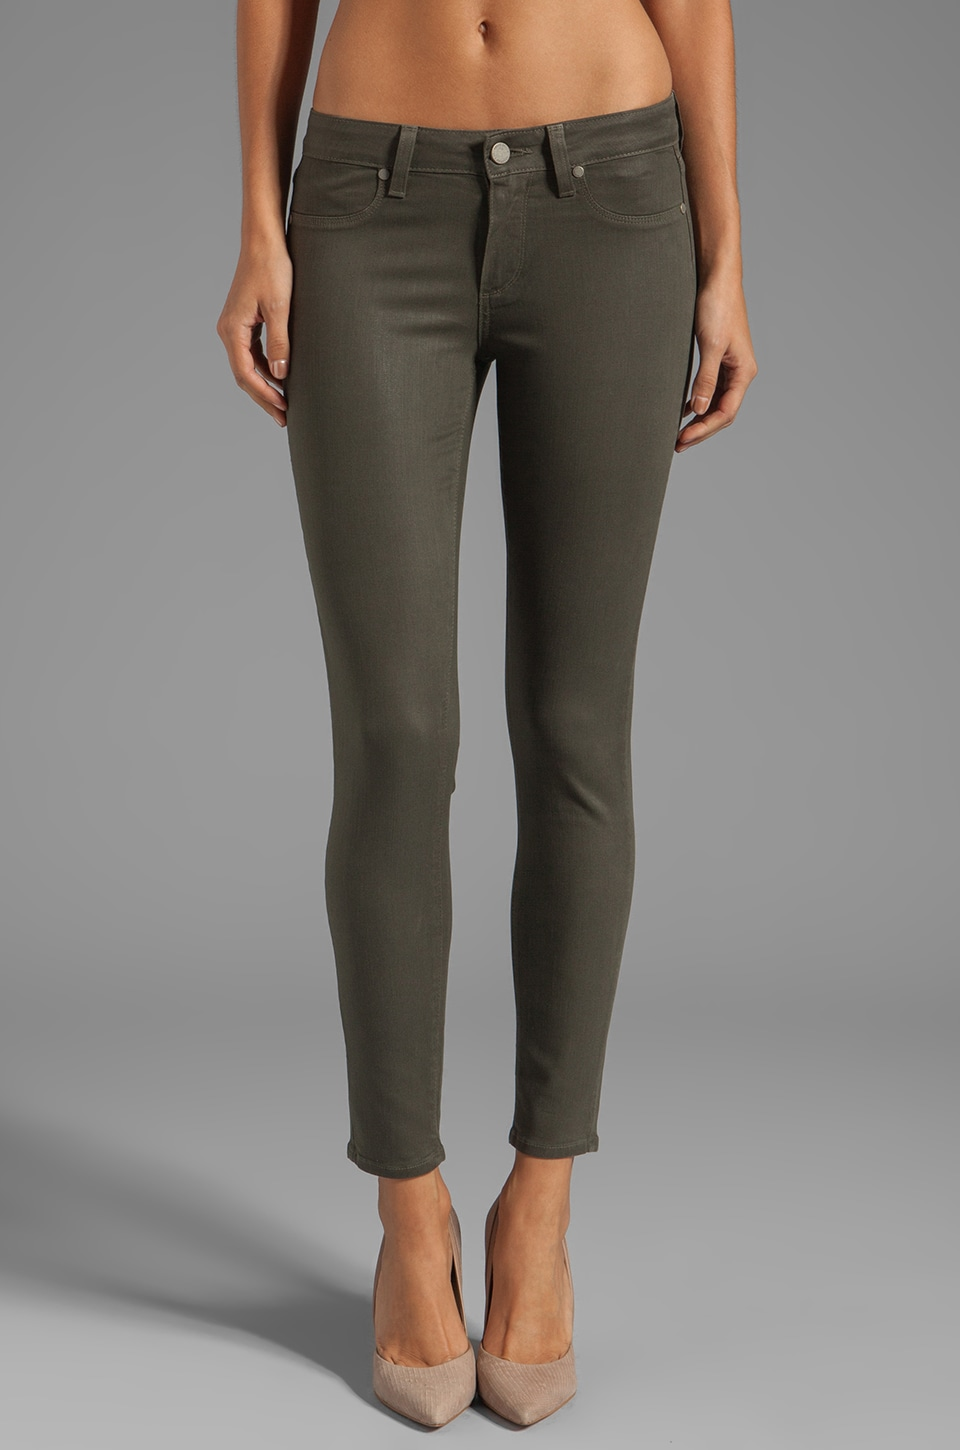 PAIGE Denim Verdugo Skinny Ankle in Tea Leaf